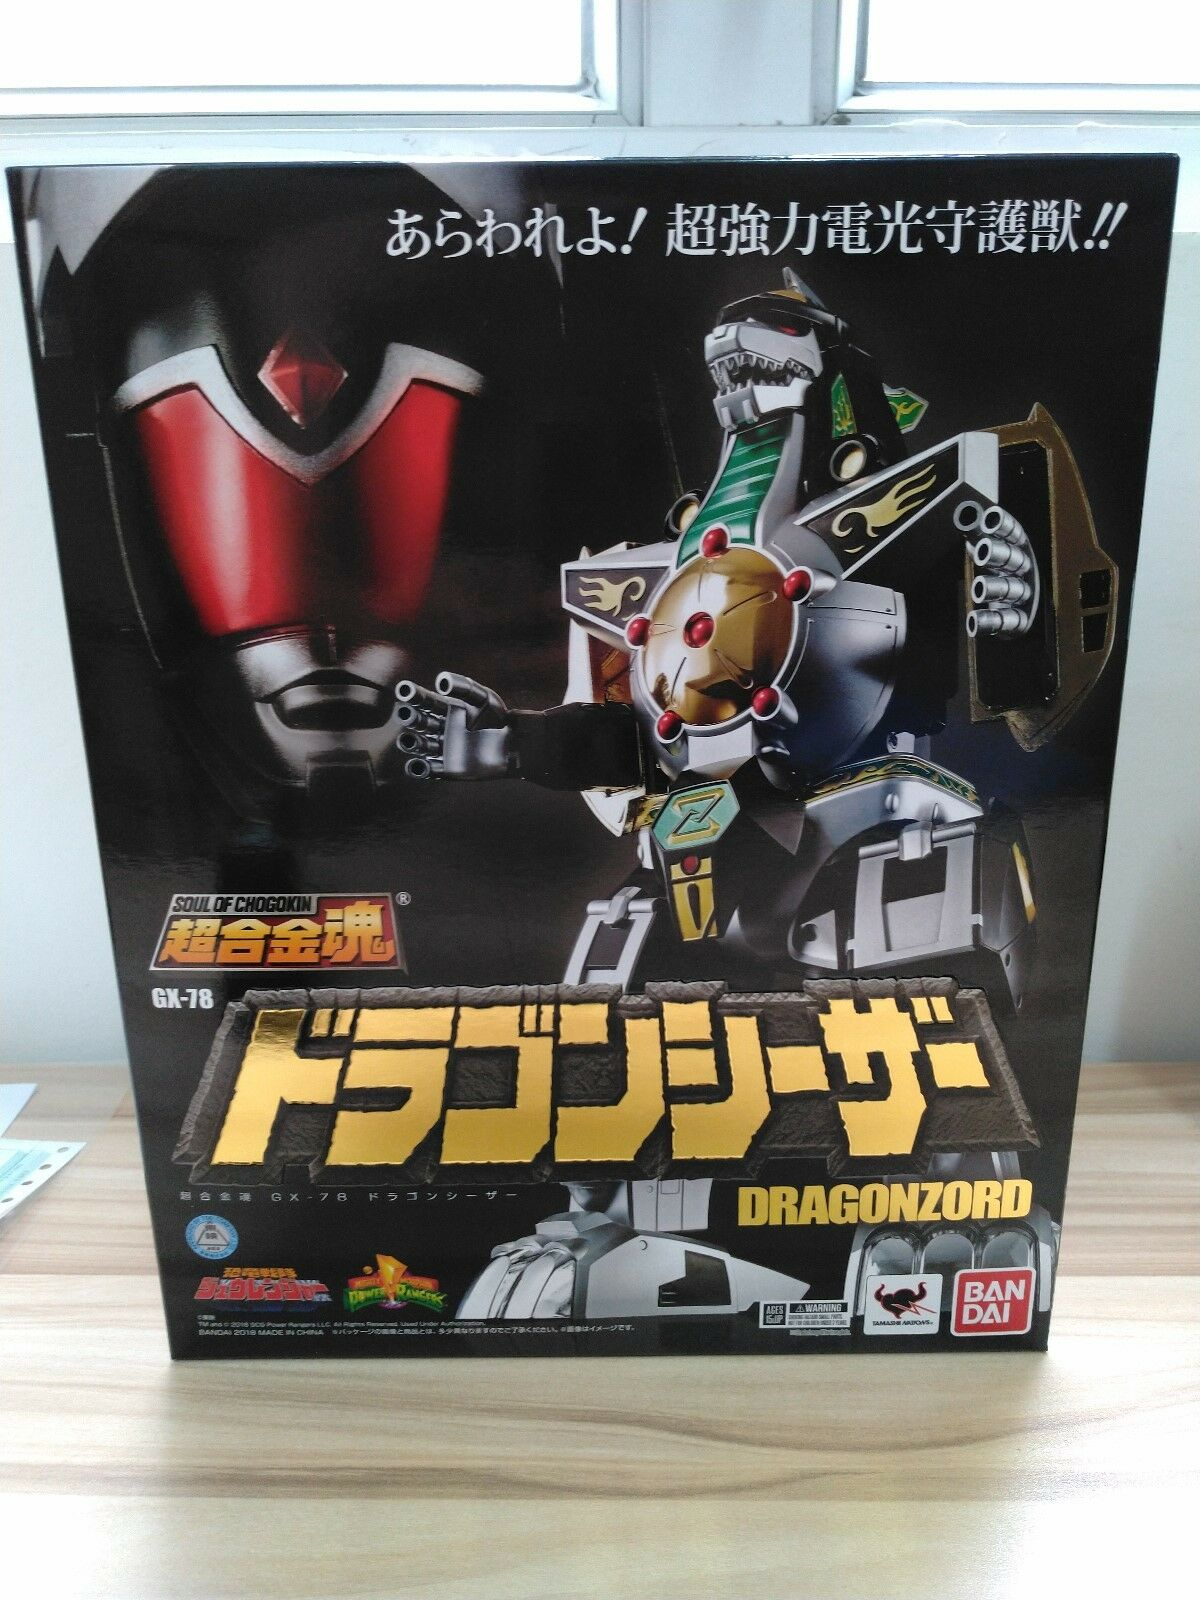 BANDAI SOUL OF CHOGOKIN Mighty Morphin Power Rangers GX-78 verde